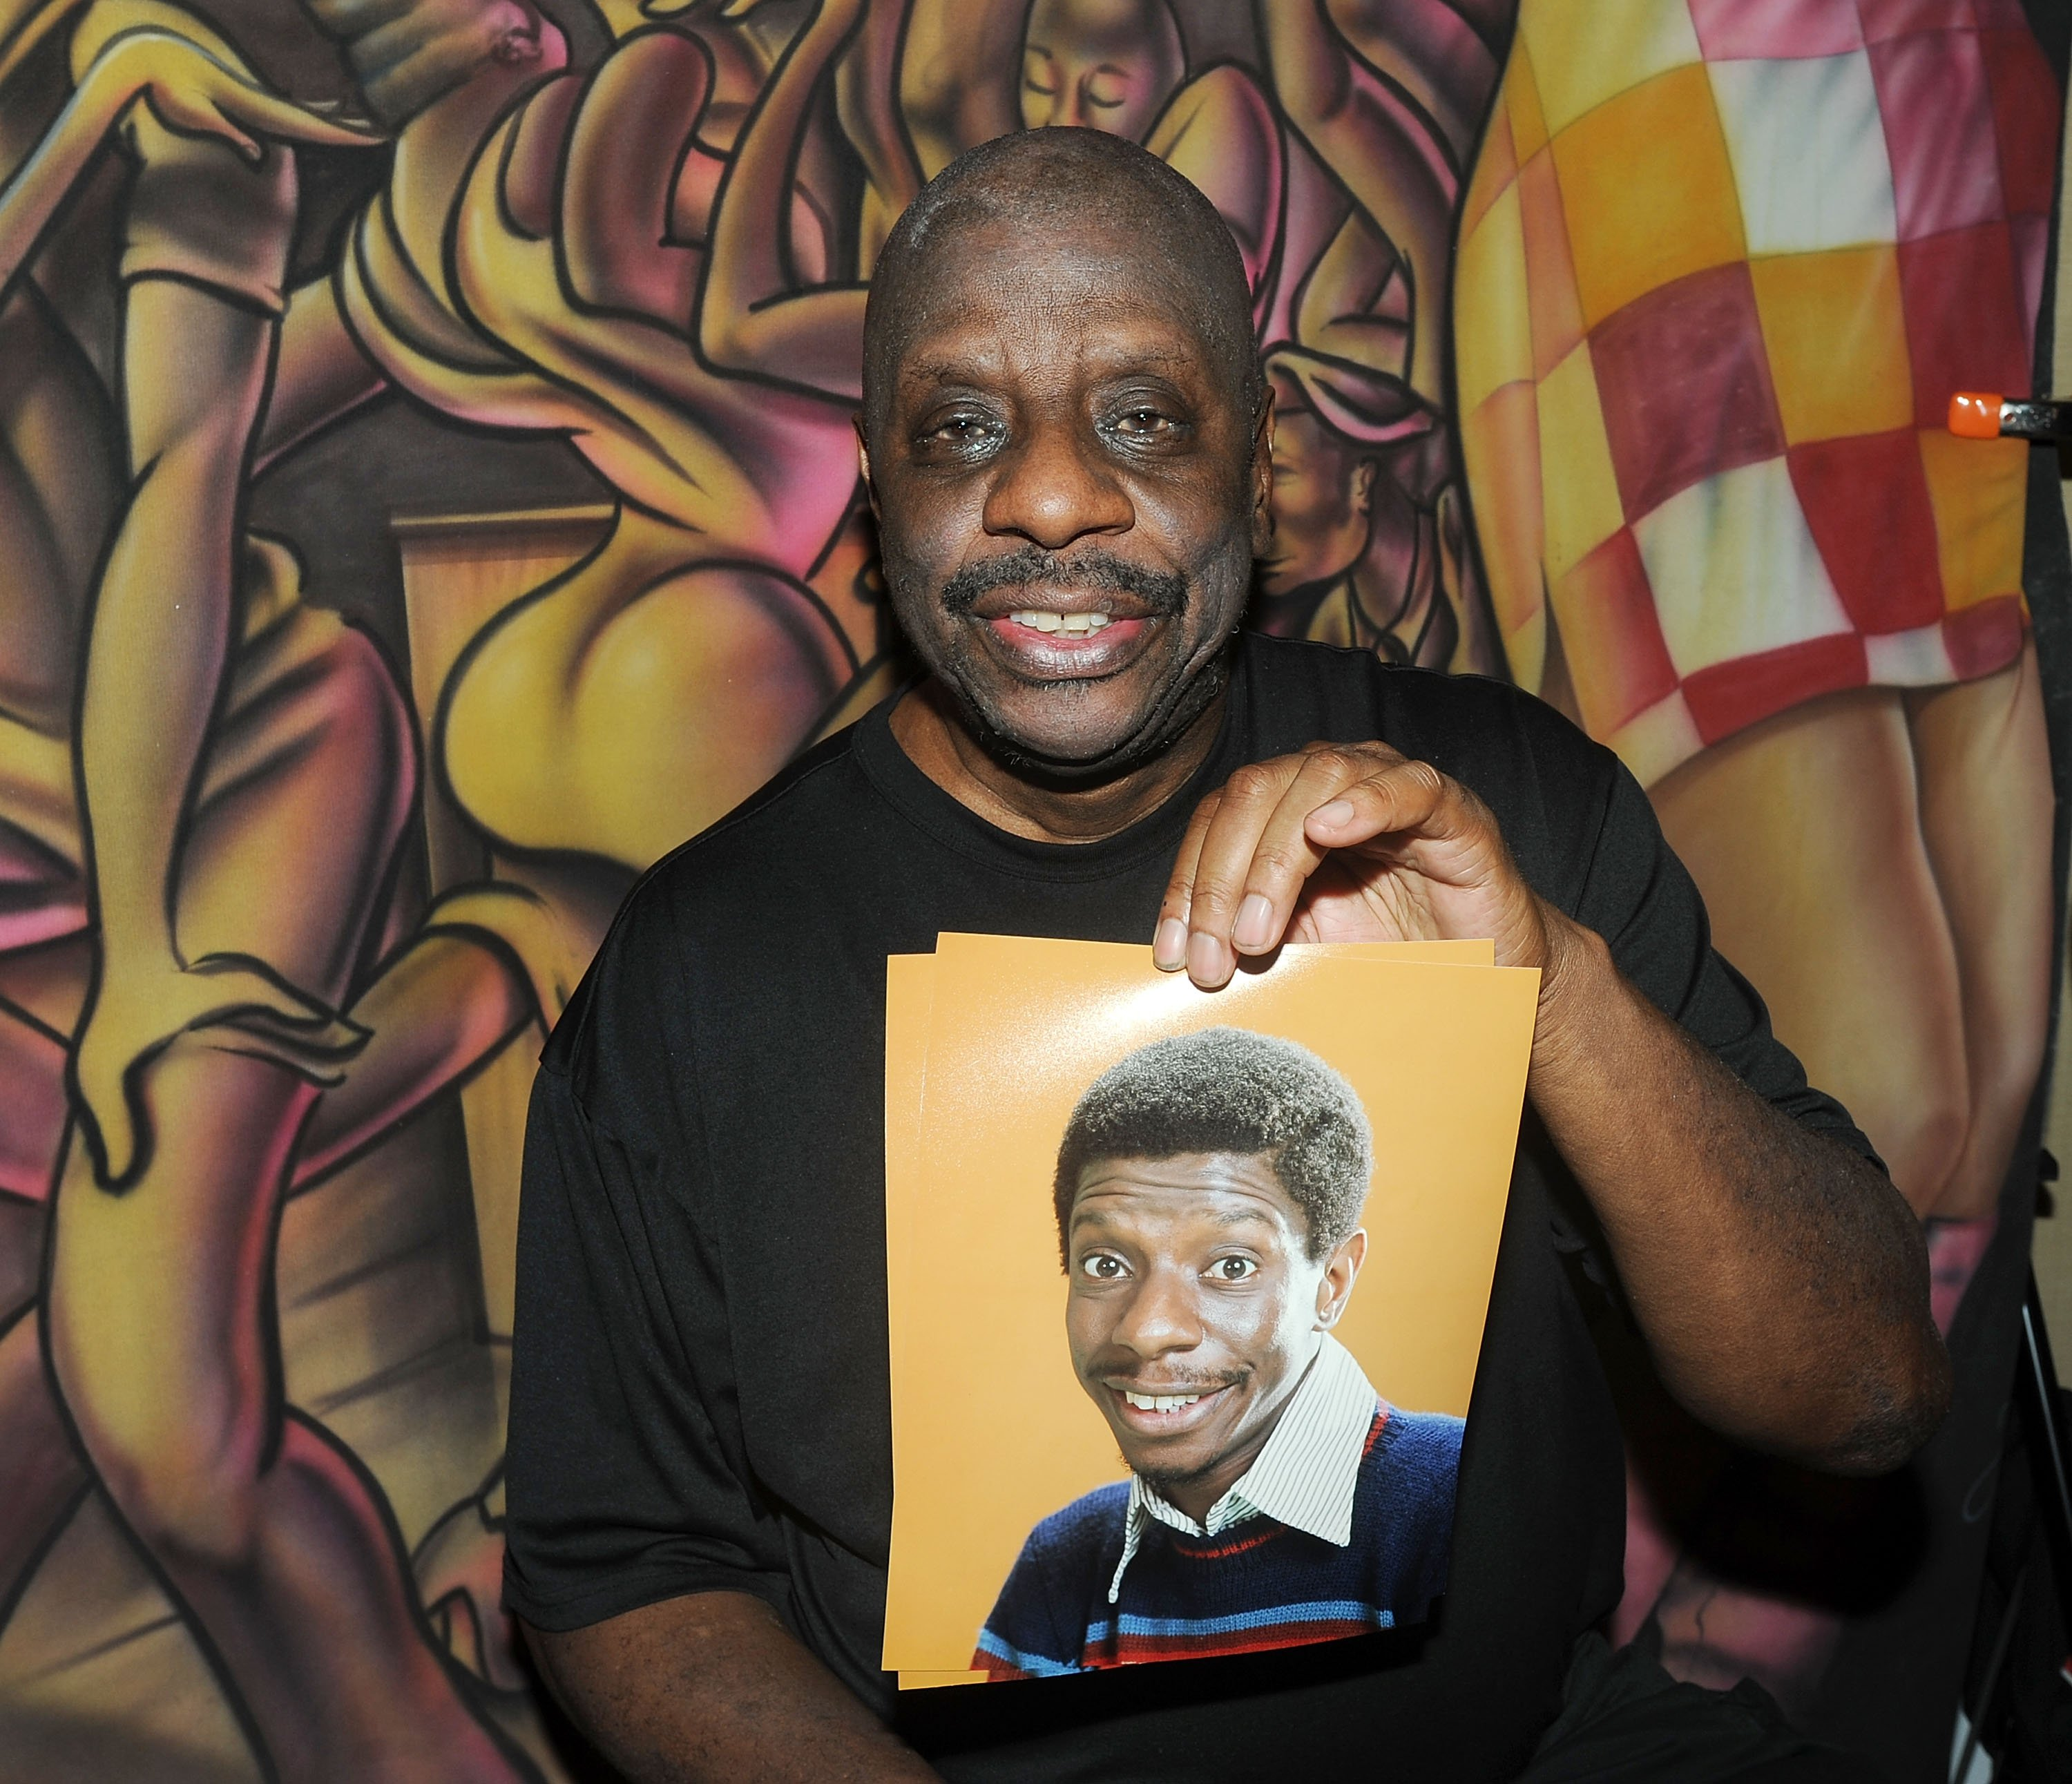 Jimmie JJ Walker attends Day 2 of the Chiller Theatre Expo at Sheraton Parsippany Hotel on October 25, 2014 | Photo: Getty Images